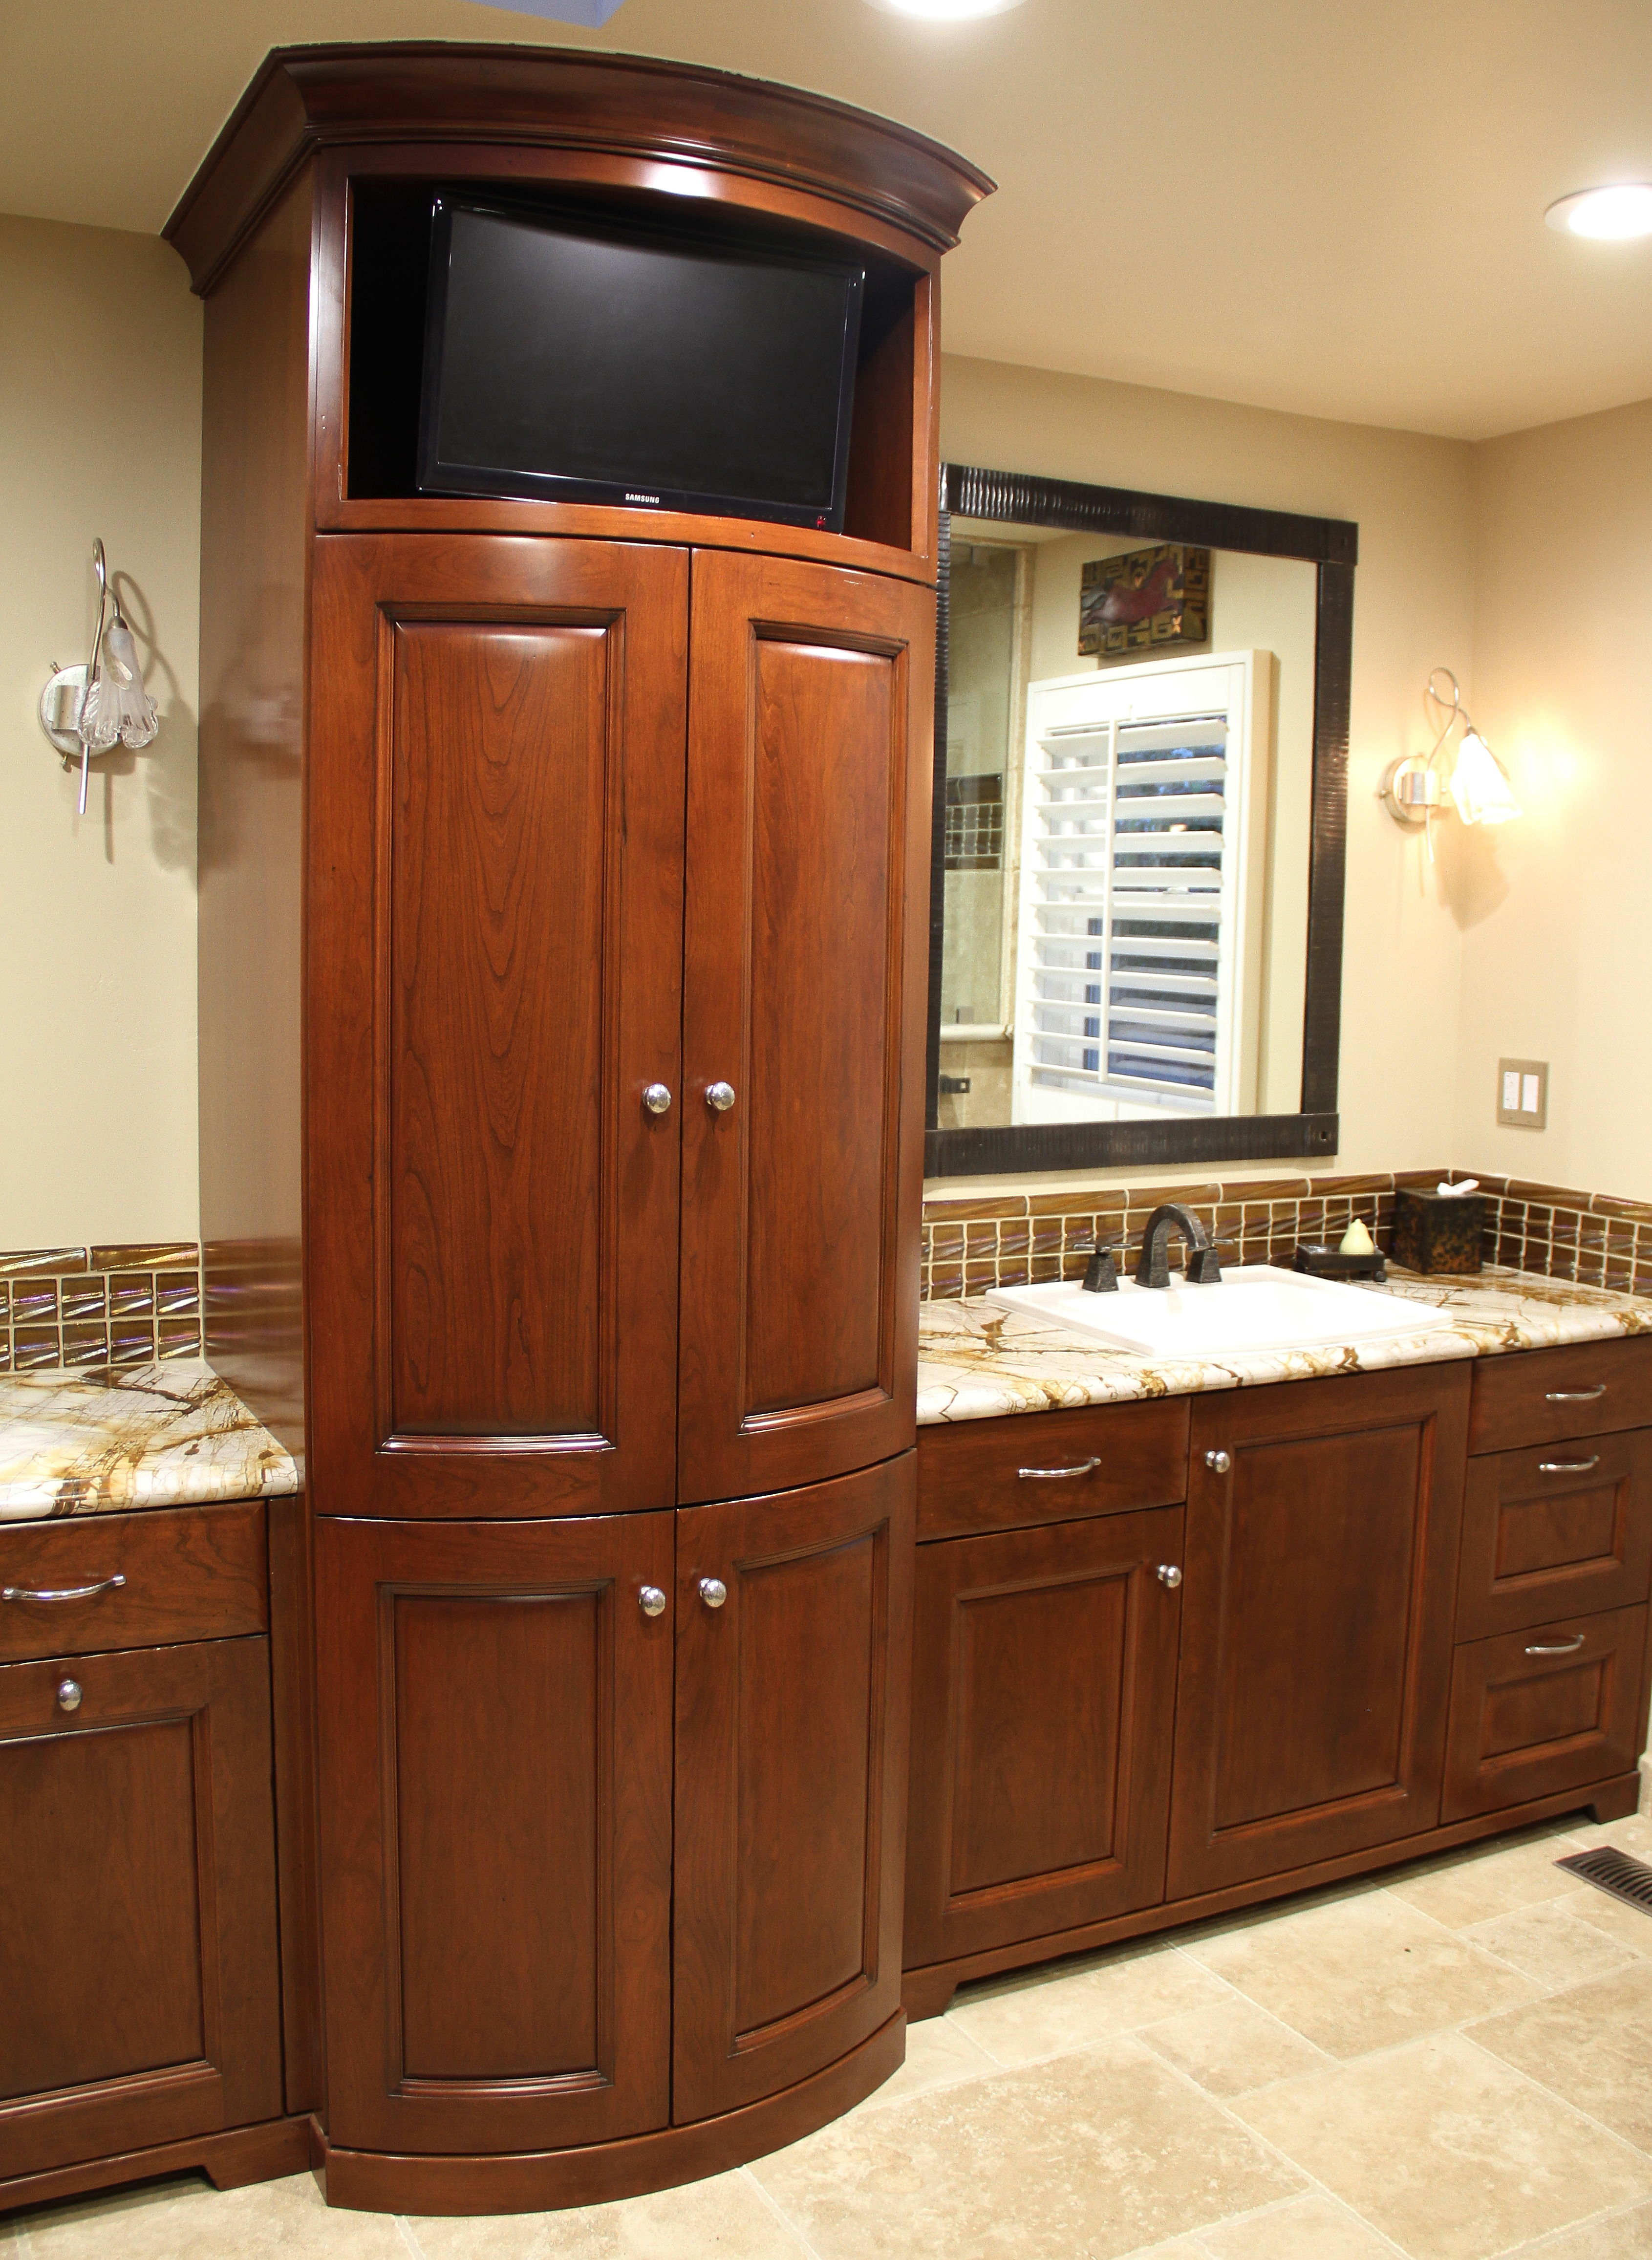 Best Kitchen Gallery: Cage Design Buildselecting Bathroom And Kitchen Cabi Wood of Kitchen Cabinet Wood on cal-ite.com